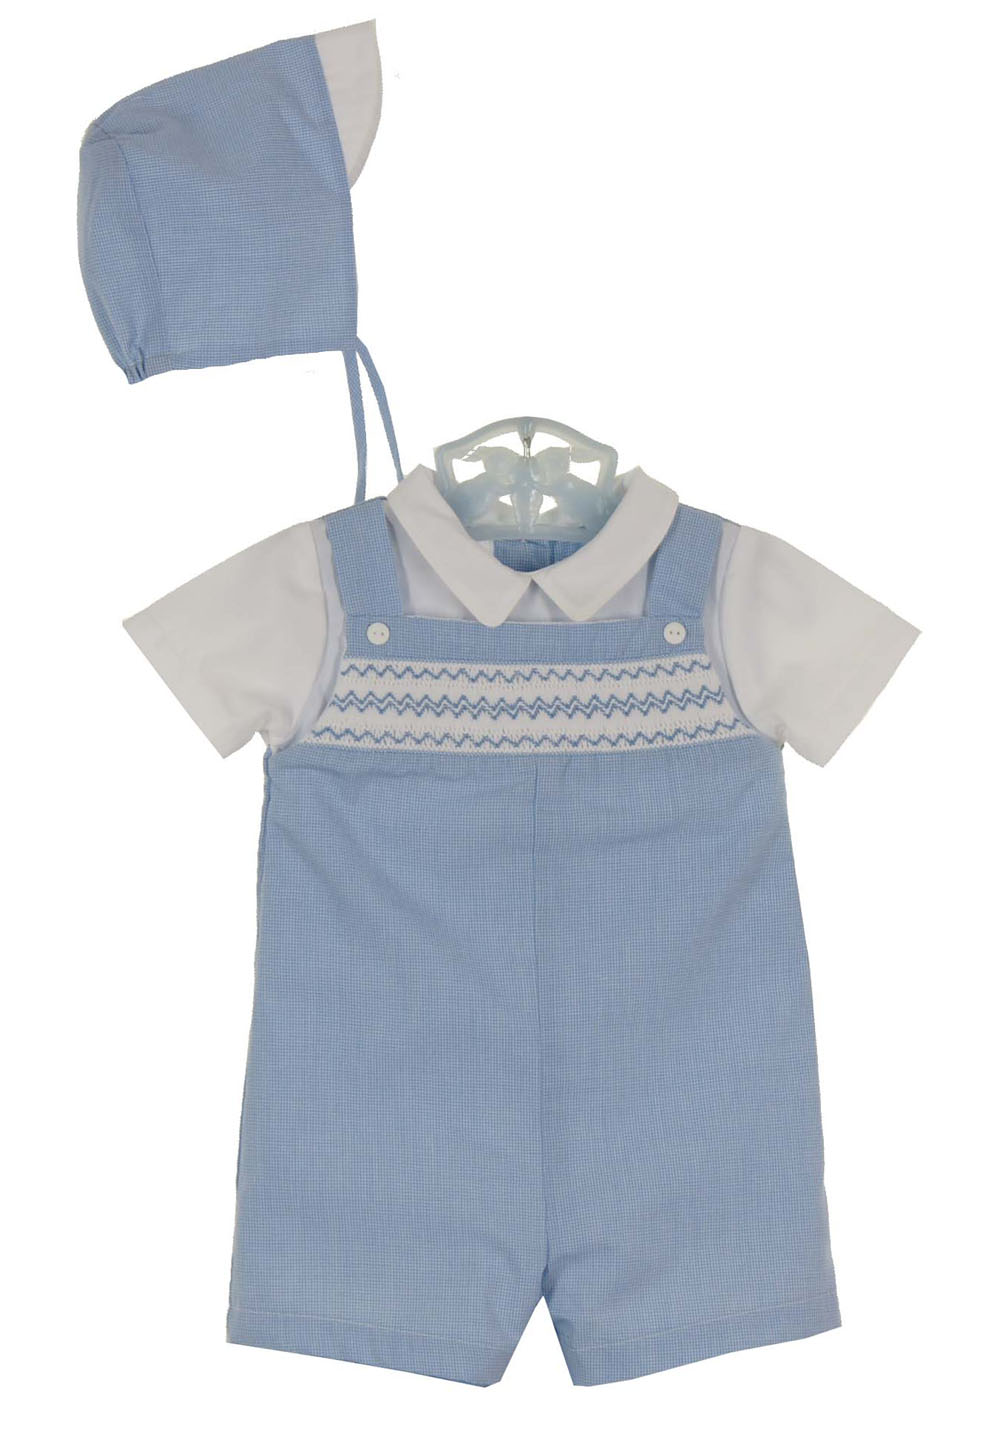 28dae6f1ab211 NEW Petit Ami Blue Checked Smocked Romper and Hat Set